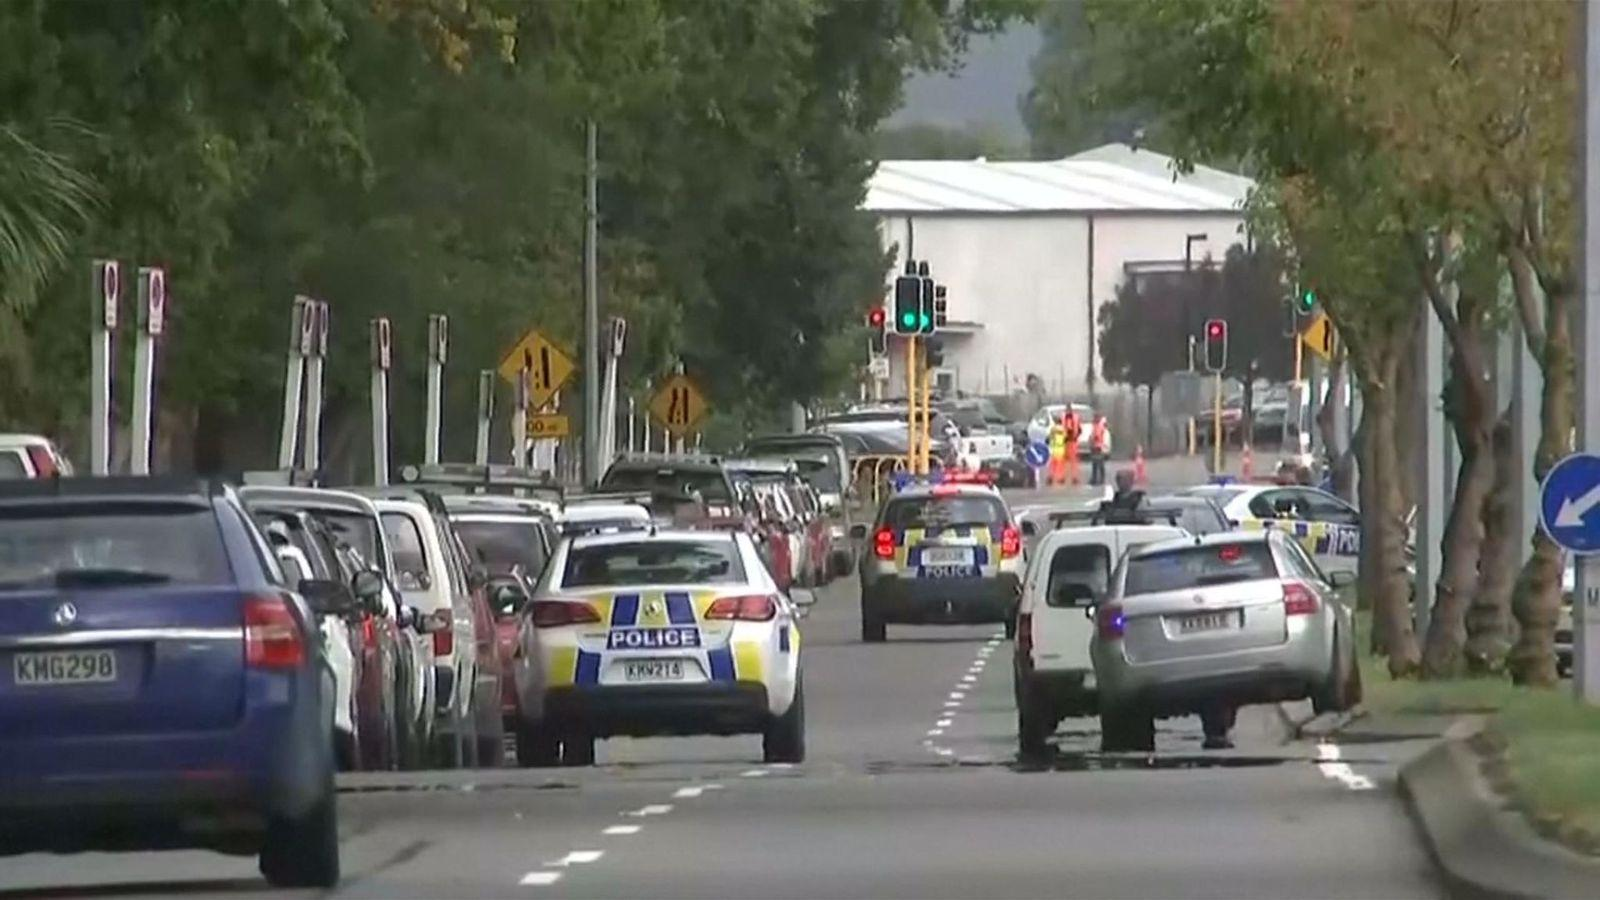 Police are deployed in the city centre after two mosques are targeted